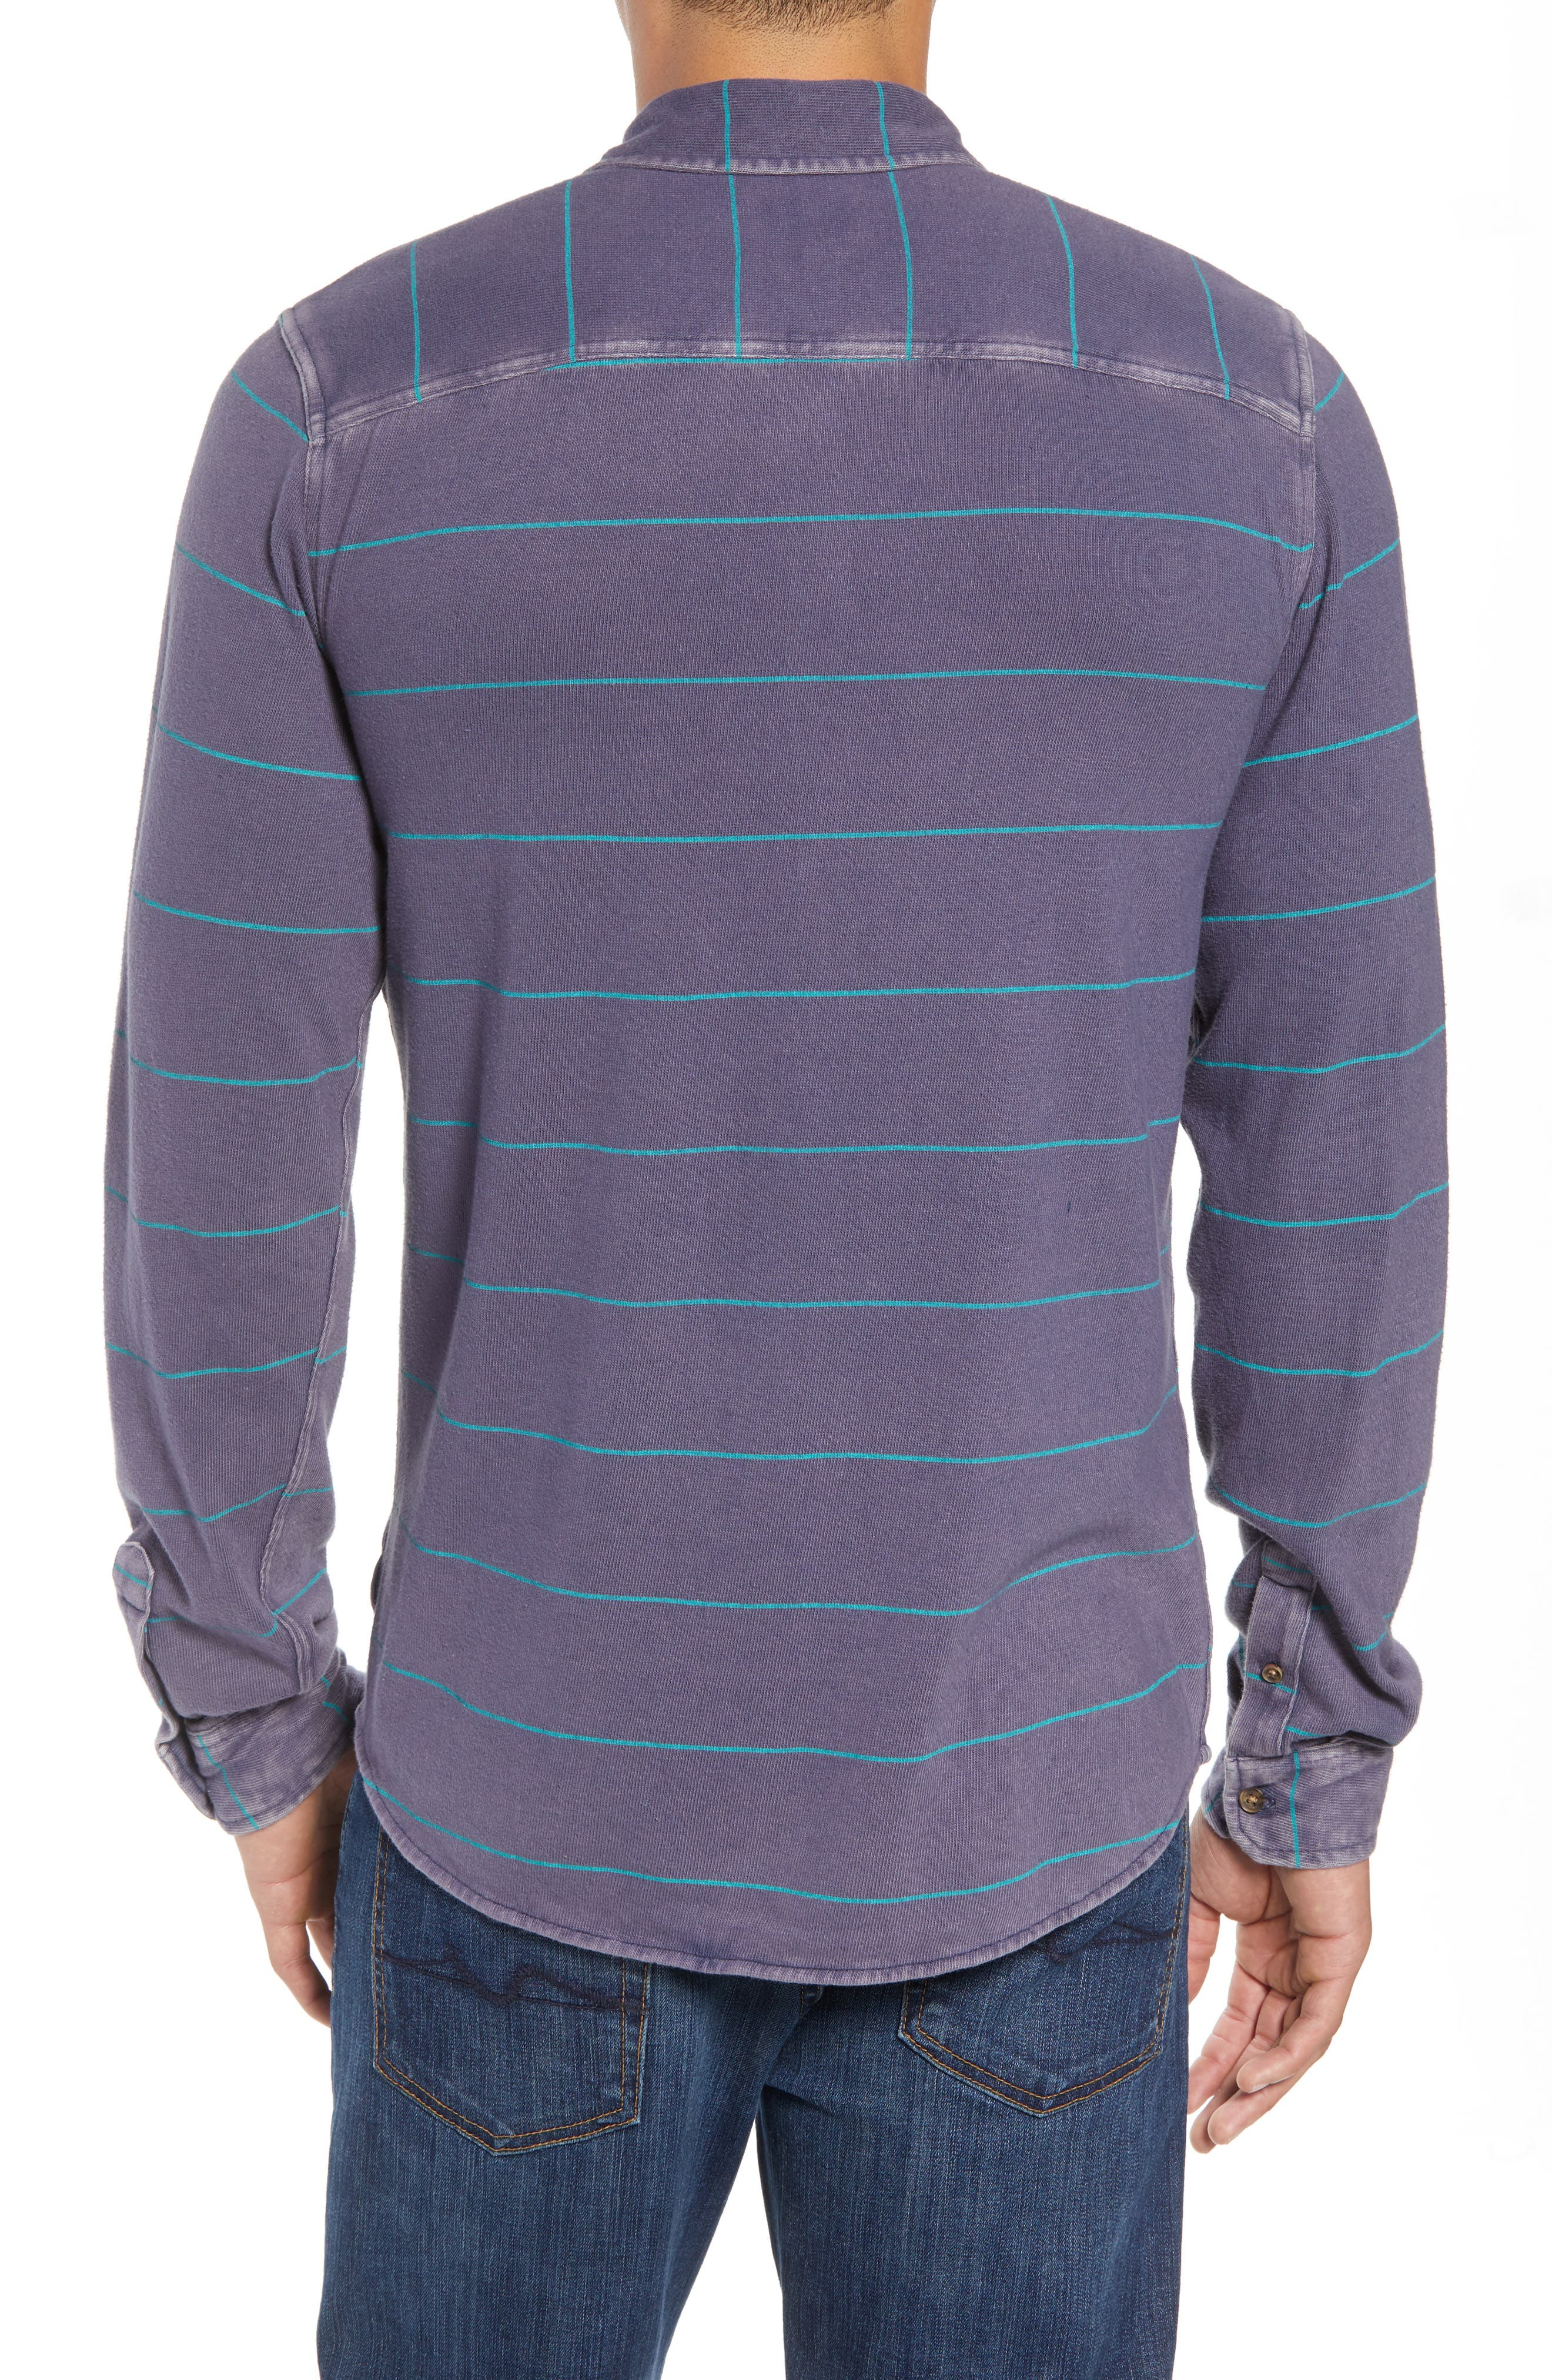 Cowell Knit Button-Up Shirt,                             Alternate thumbnail 2, color,                             NAVY